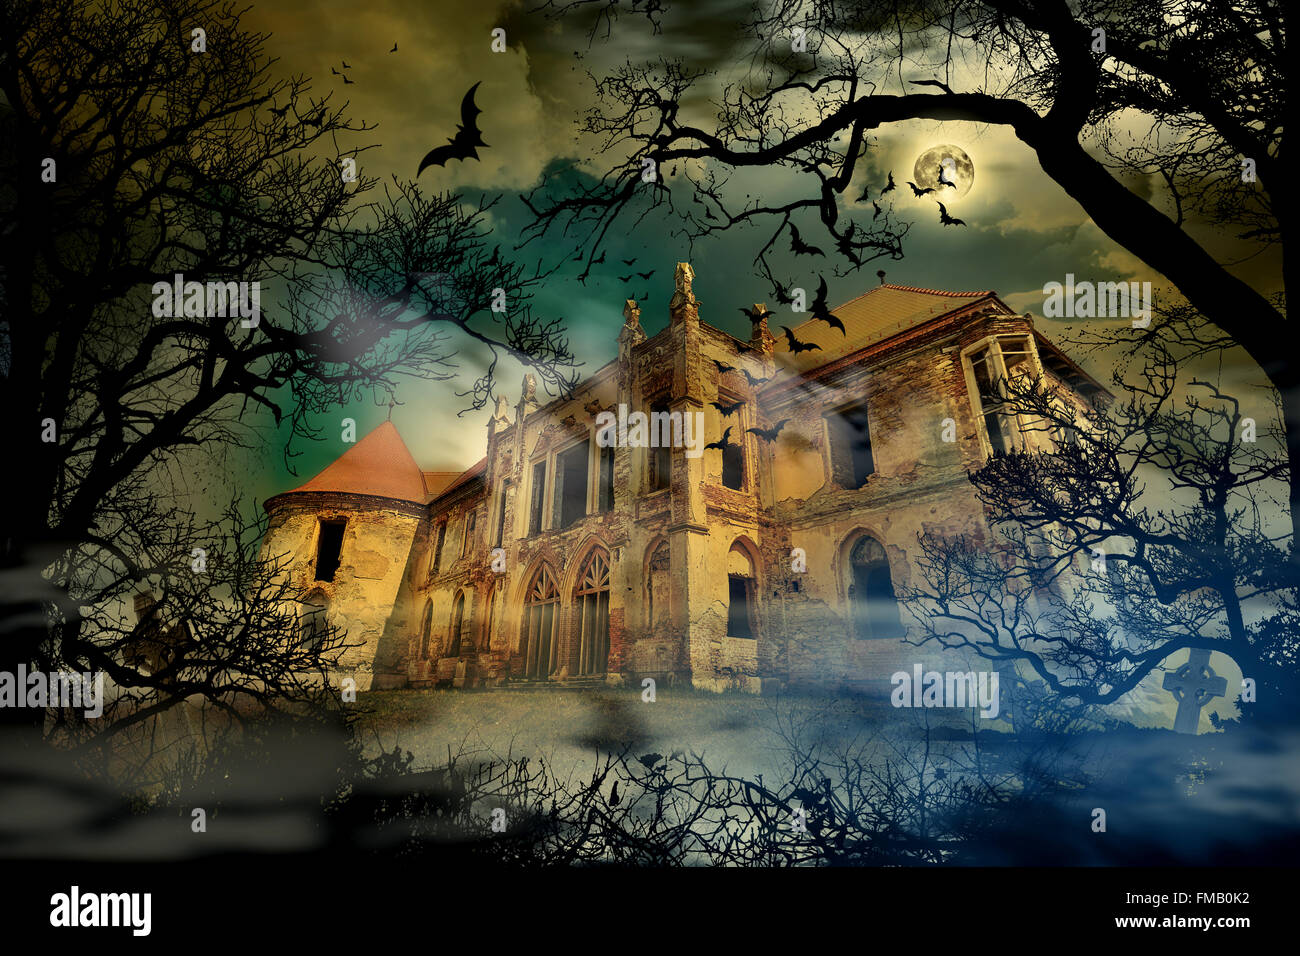 Haunted castle in creepy foggy background with tree silhouettes. - Stock Image